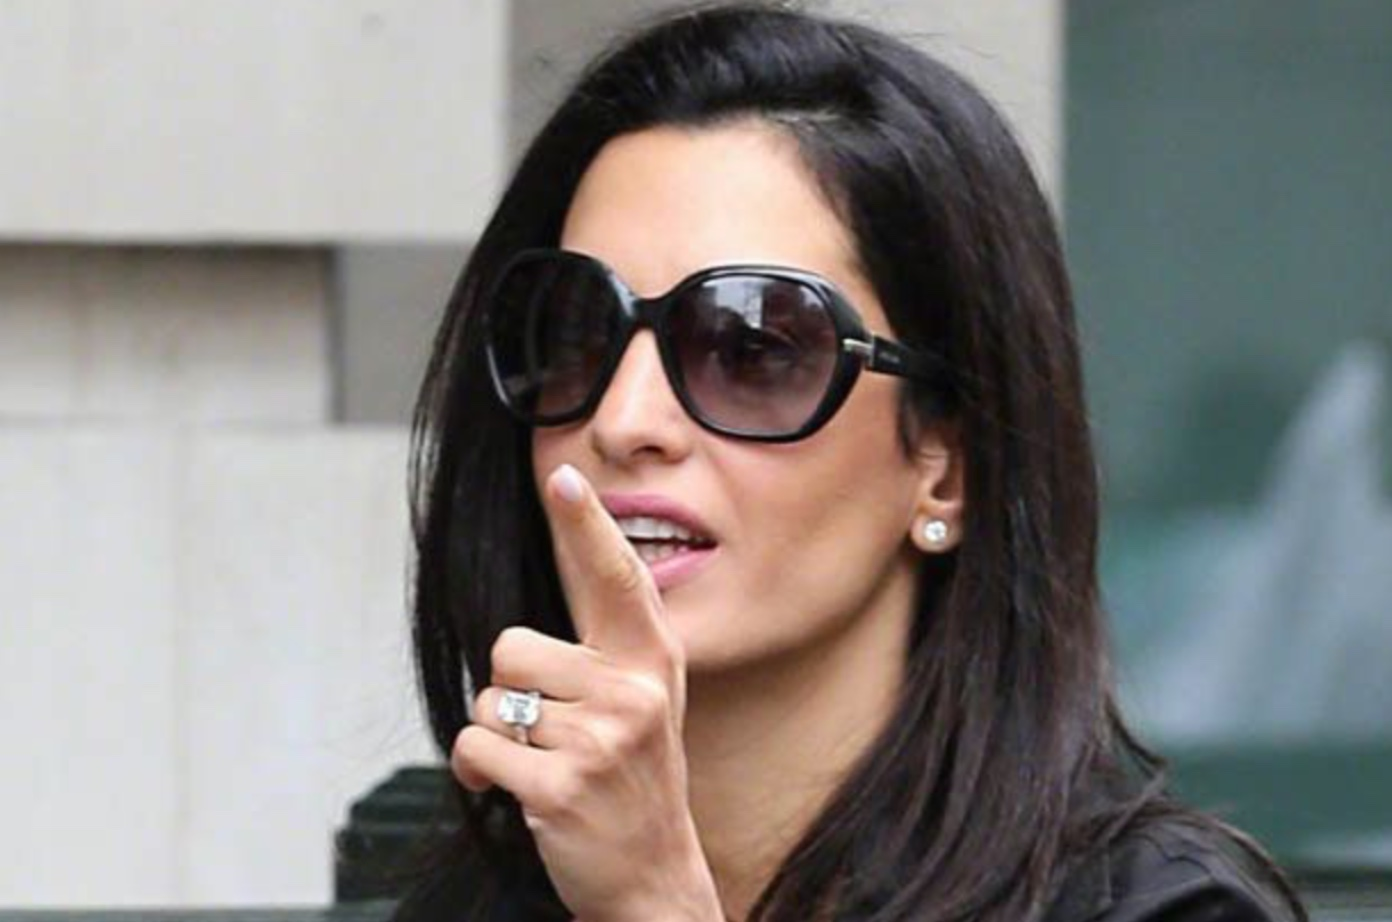 Amal Clooney could replace her engagement ring 24112015 Amal